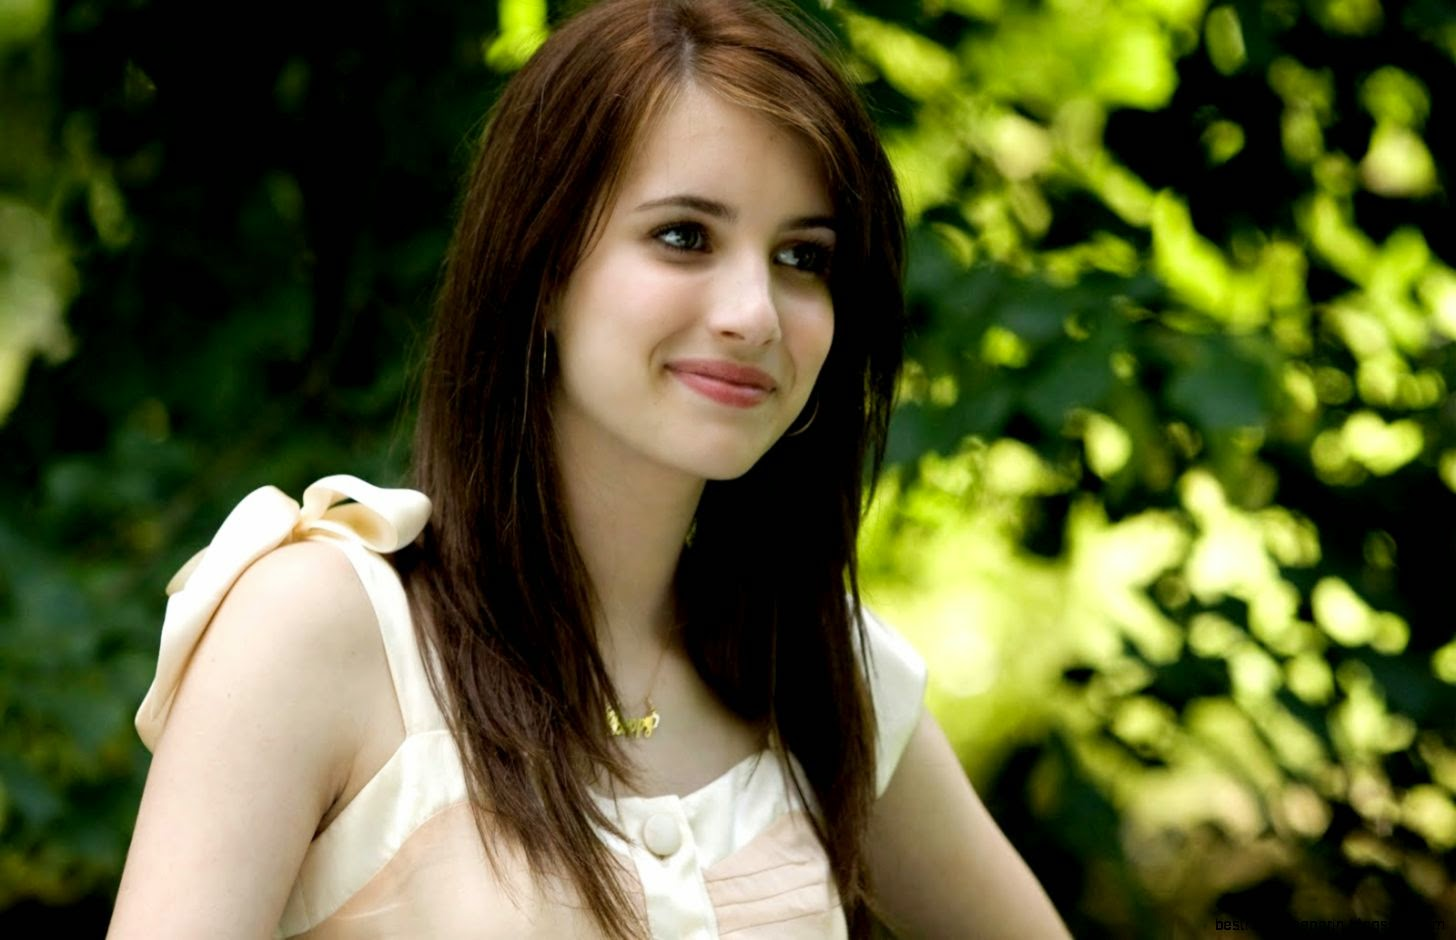 Top 100 Most Beautiful Girls Pic In World, Cutest Girls In -6215